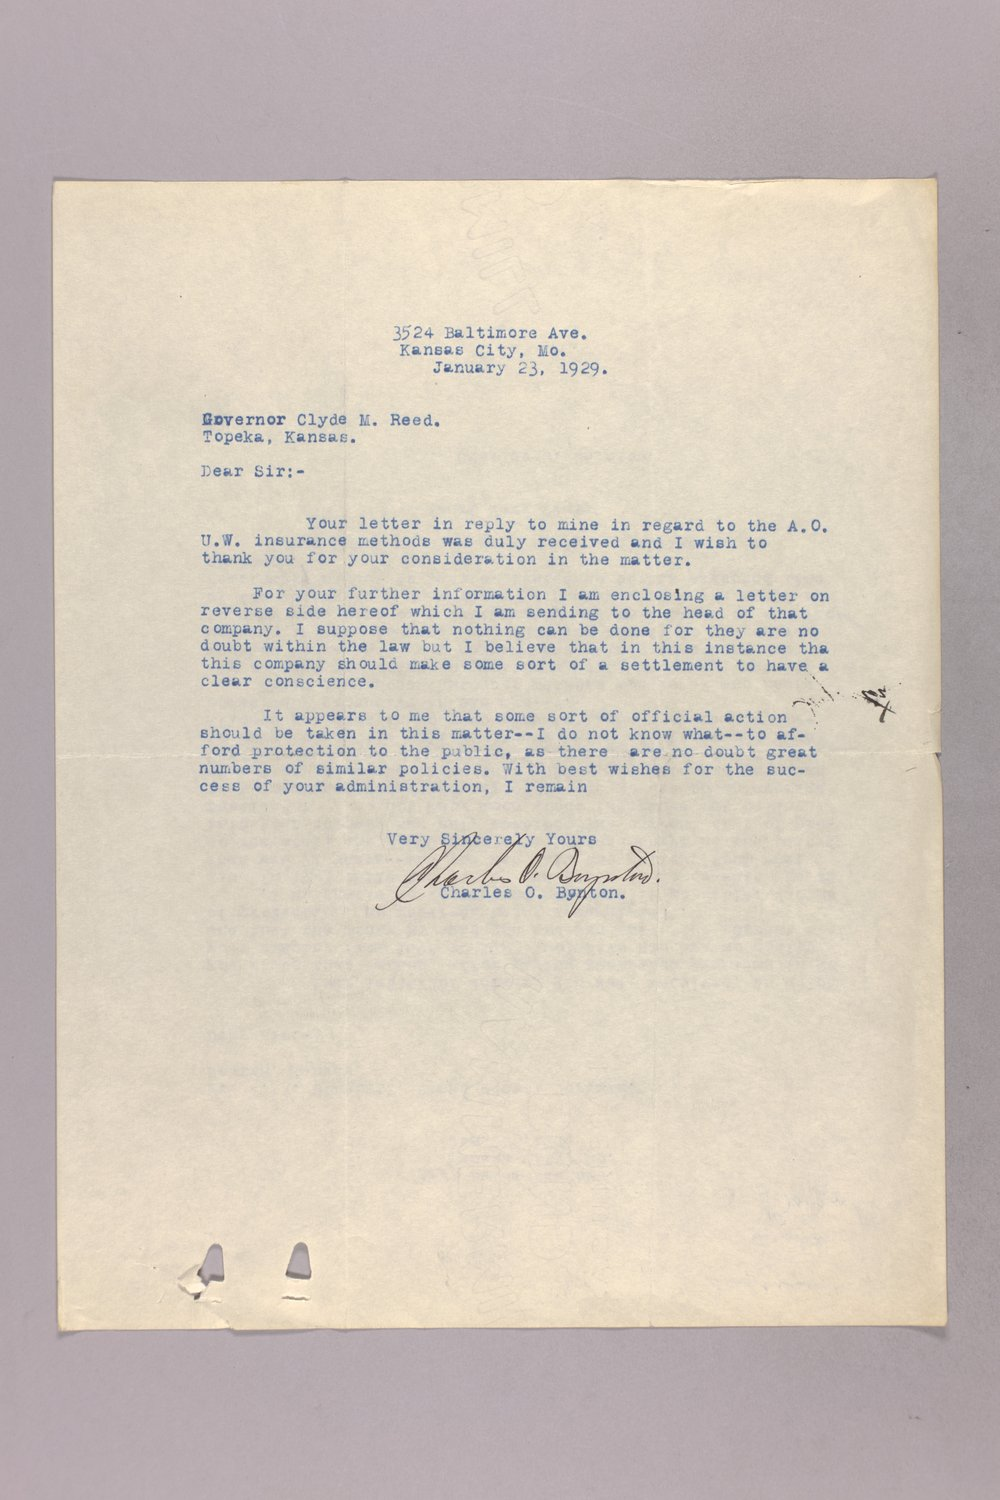 Governor Clyde M. Reed correspondence, insurance - 7